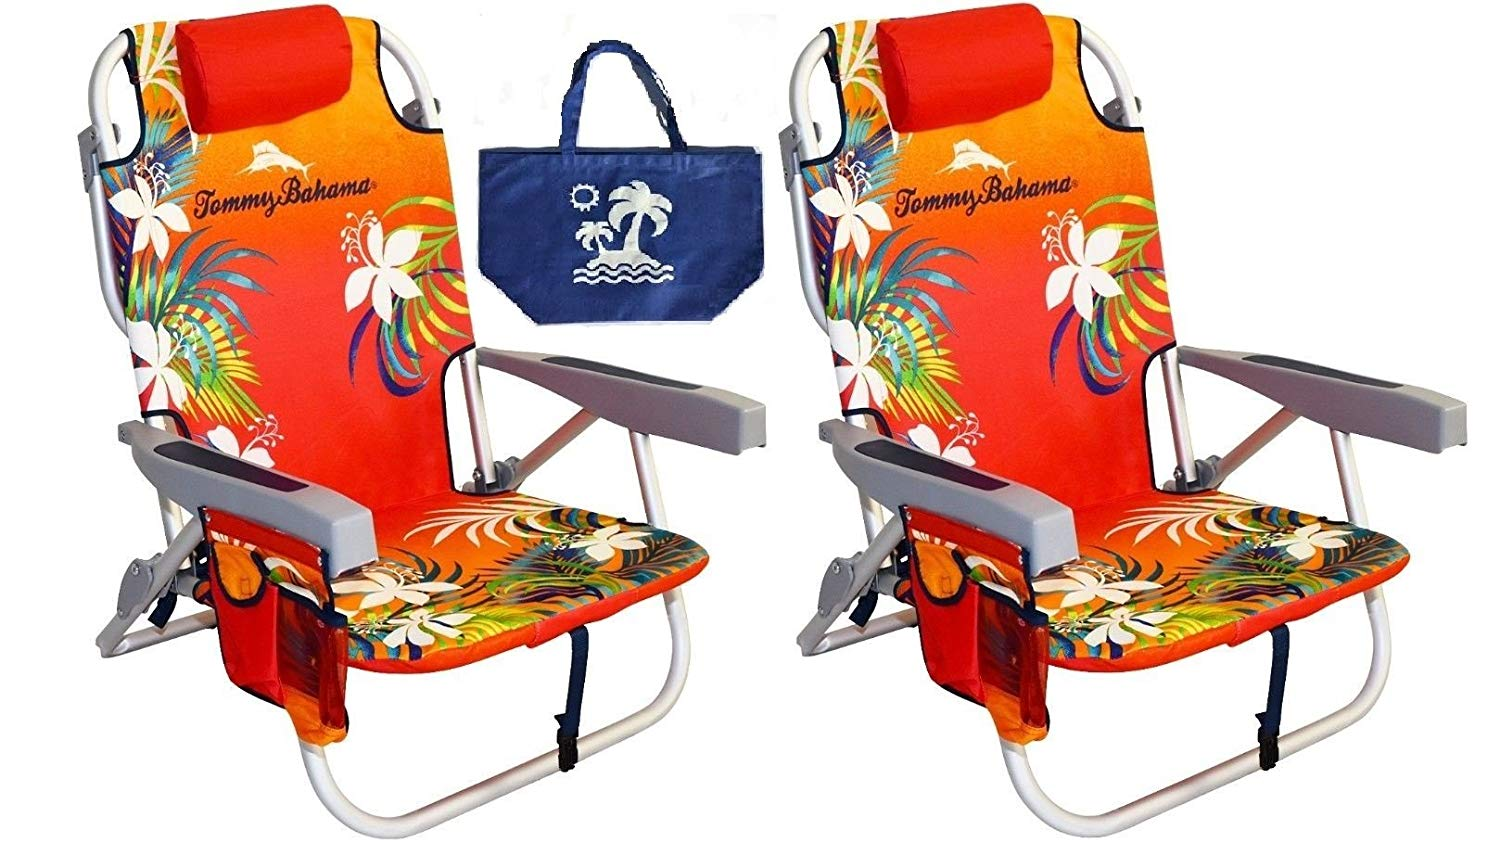 Tommy Bahama 2 Backpack Beach Chairs/Red